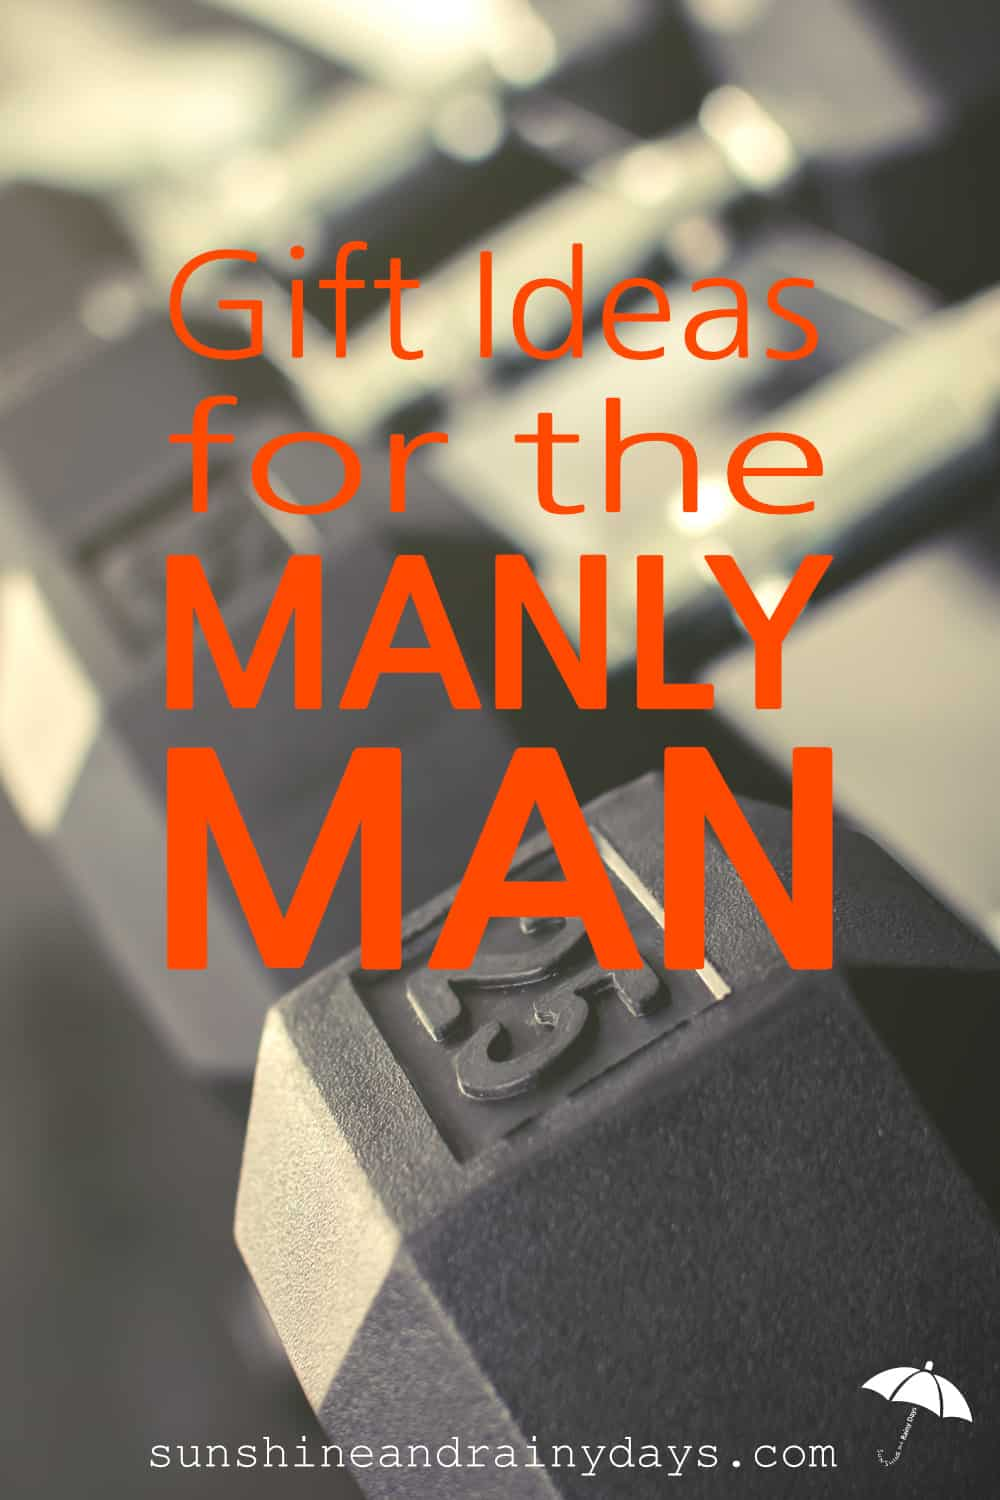 Looking for gift ideas for the manly man who has it all? We have you covered with gift ideas the manly man may not even know he wants until he sees it! Written by a manly man for those who love a manly man!